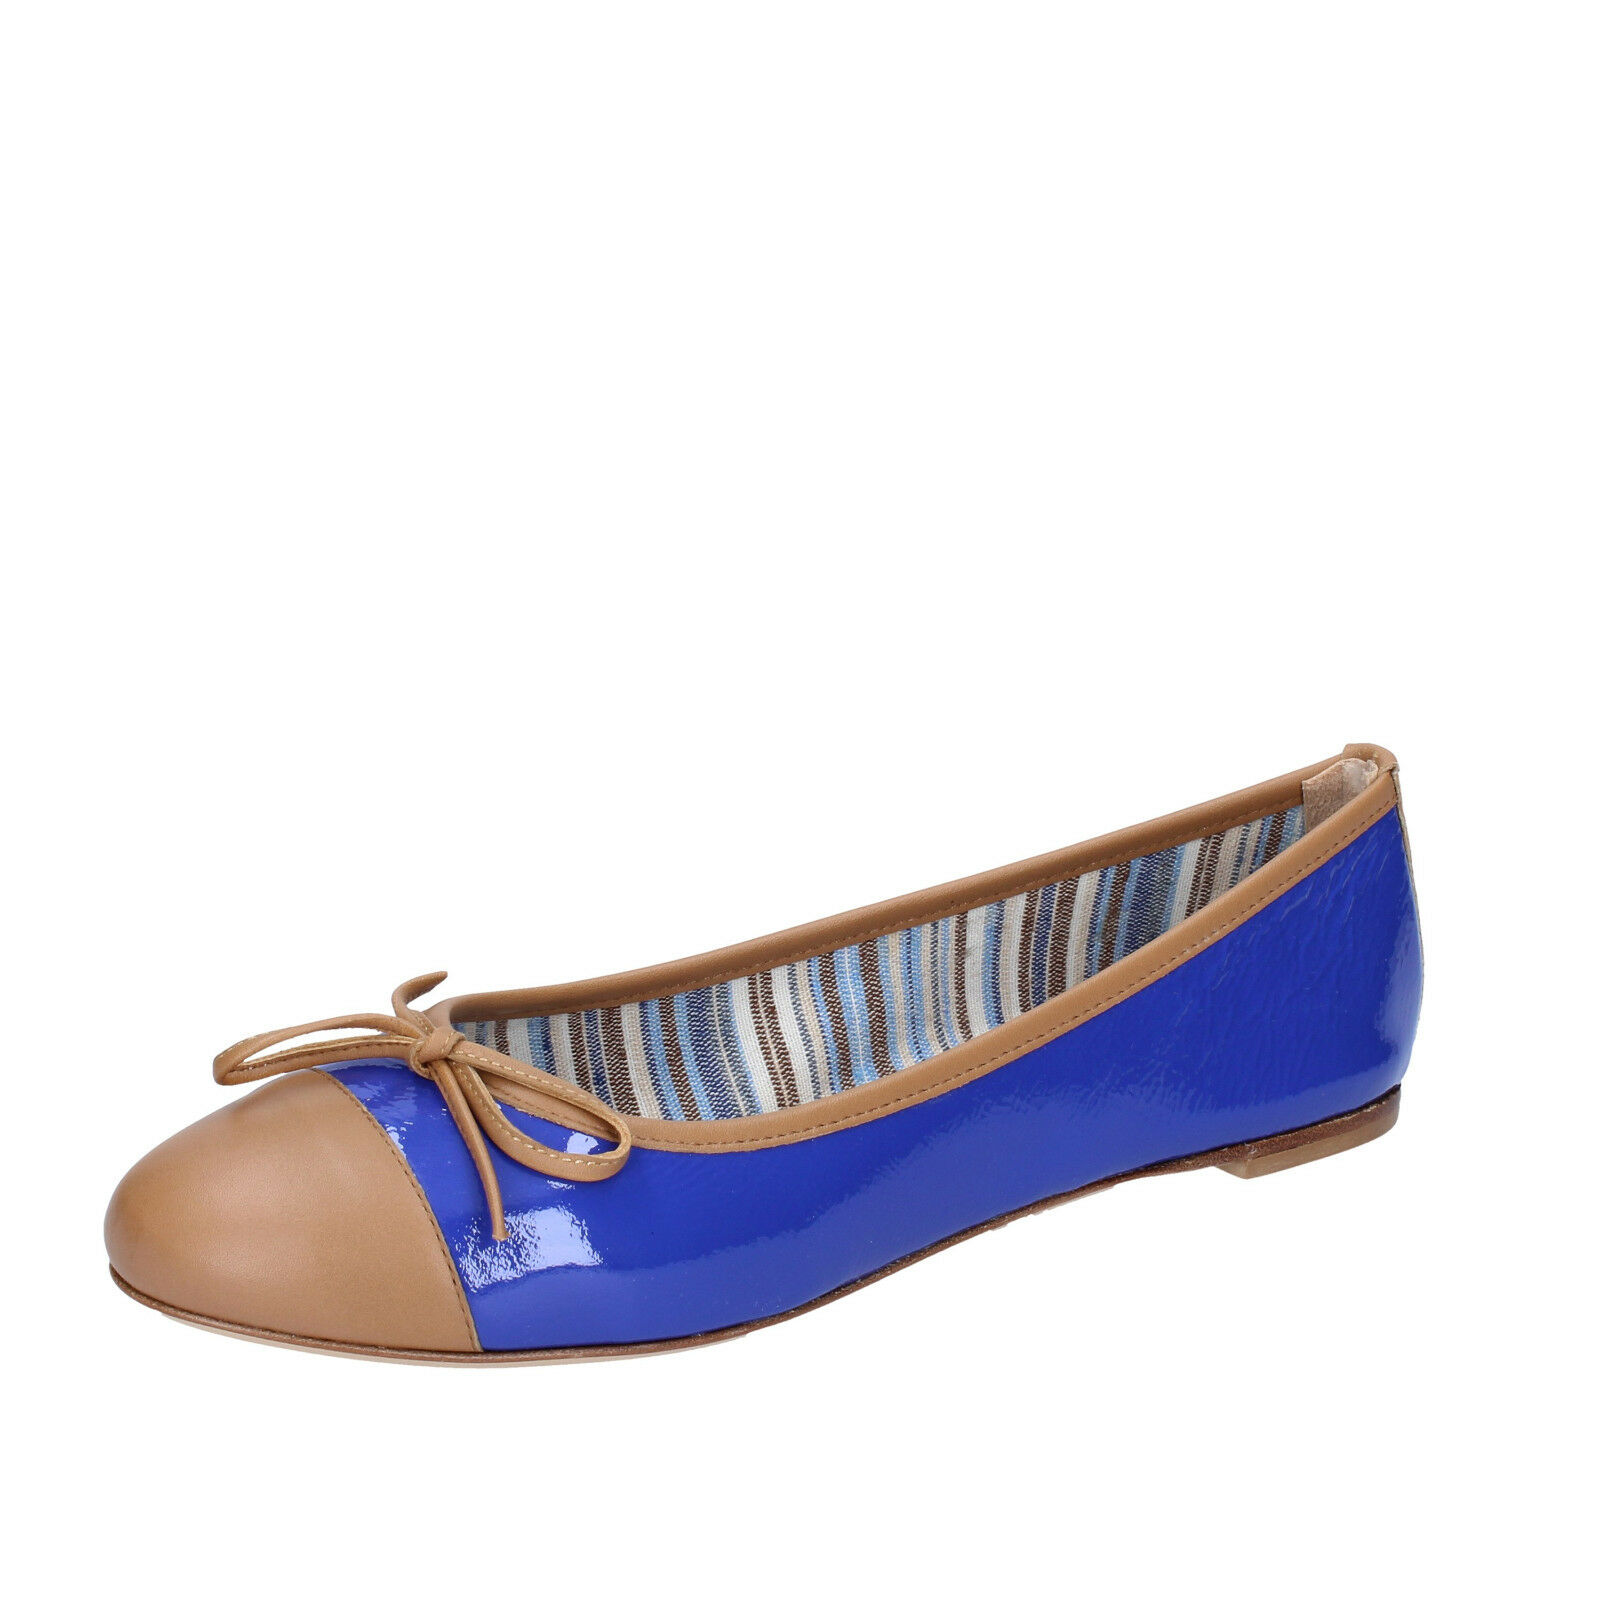 Womens shoes 18 KT 4 (EU 37) flats bluee brown patent leather BS167-37